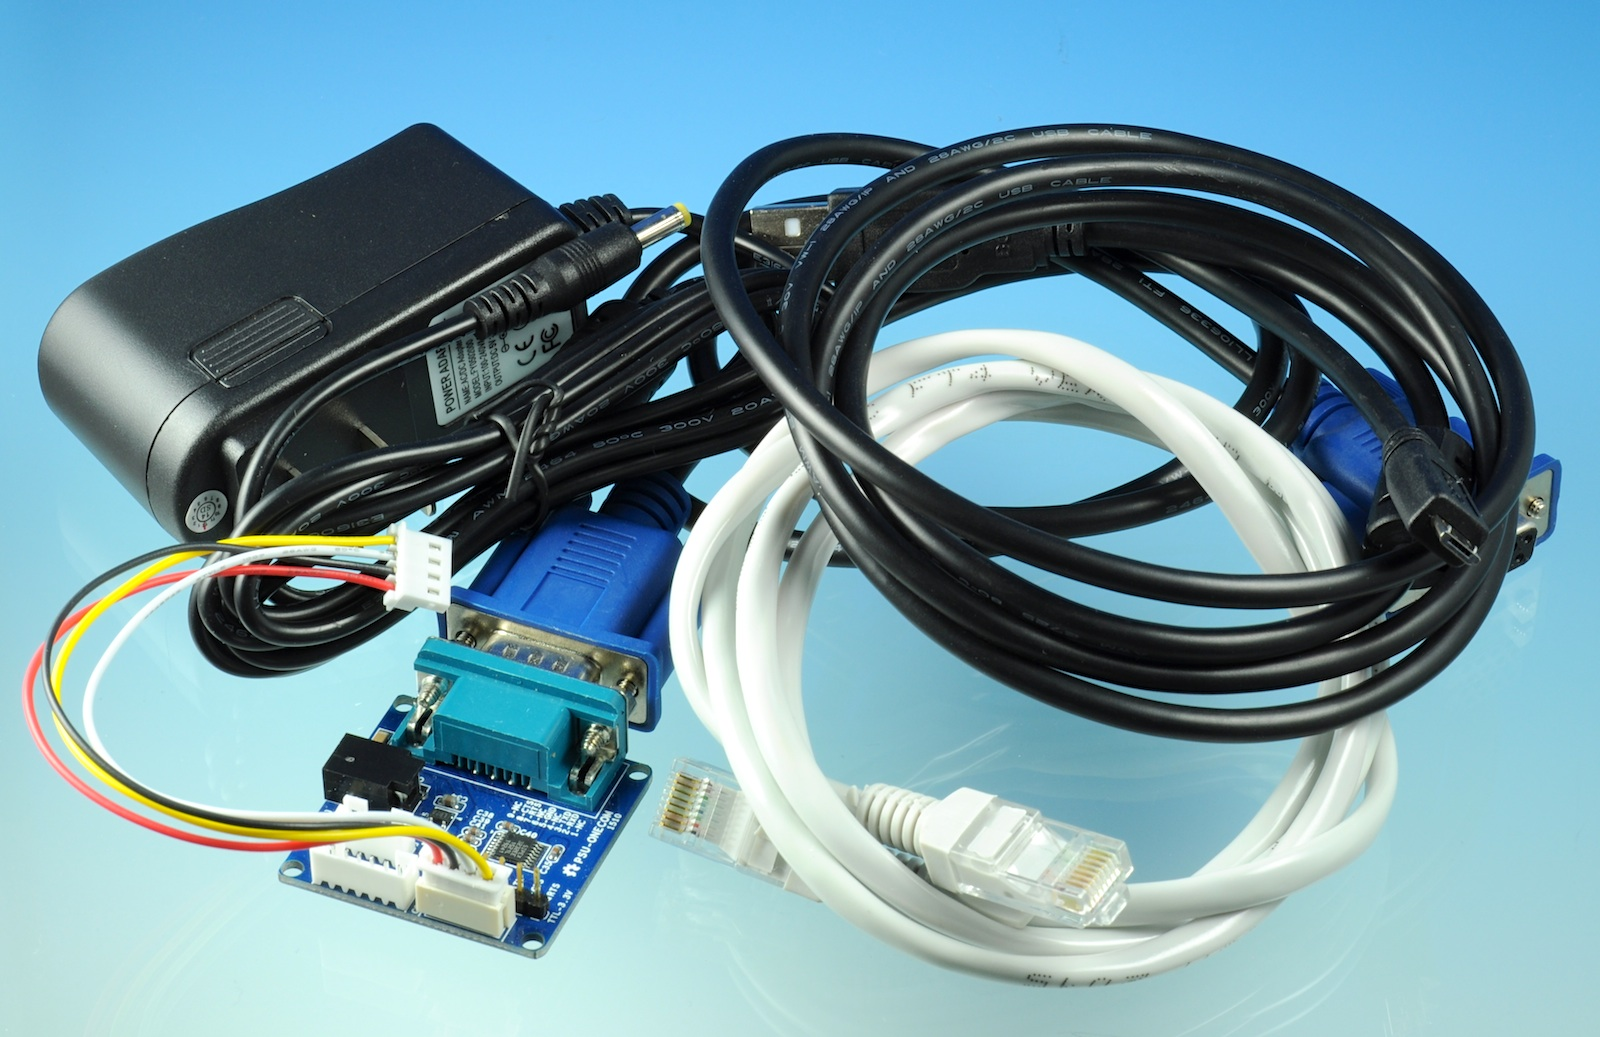 Name Nanopi Wiringpi Need Cables Power Supply Etc Dont Forget To Add The Nano Accessories Kit 1680